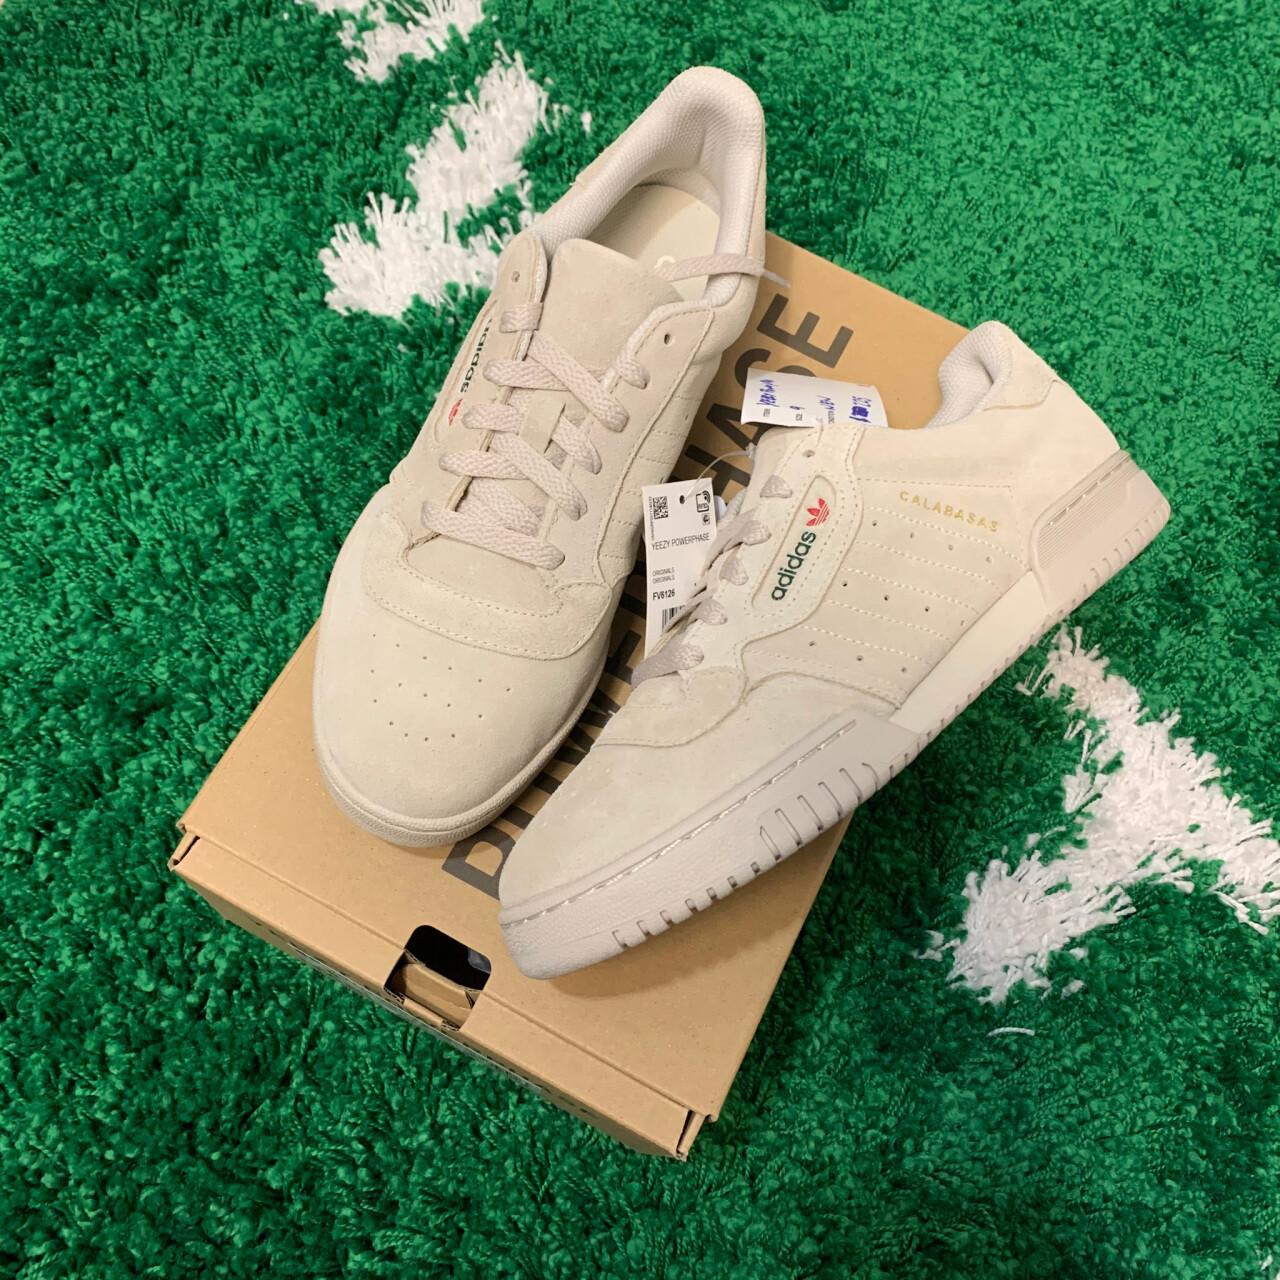 Adidas Yeezy Powerphase Calabasas Clear Brown Size 9